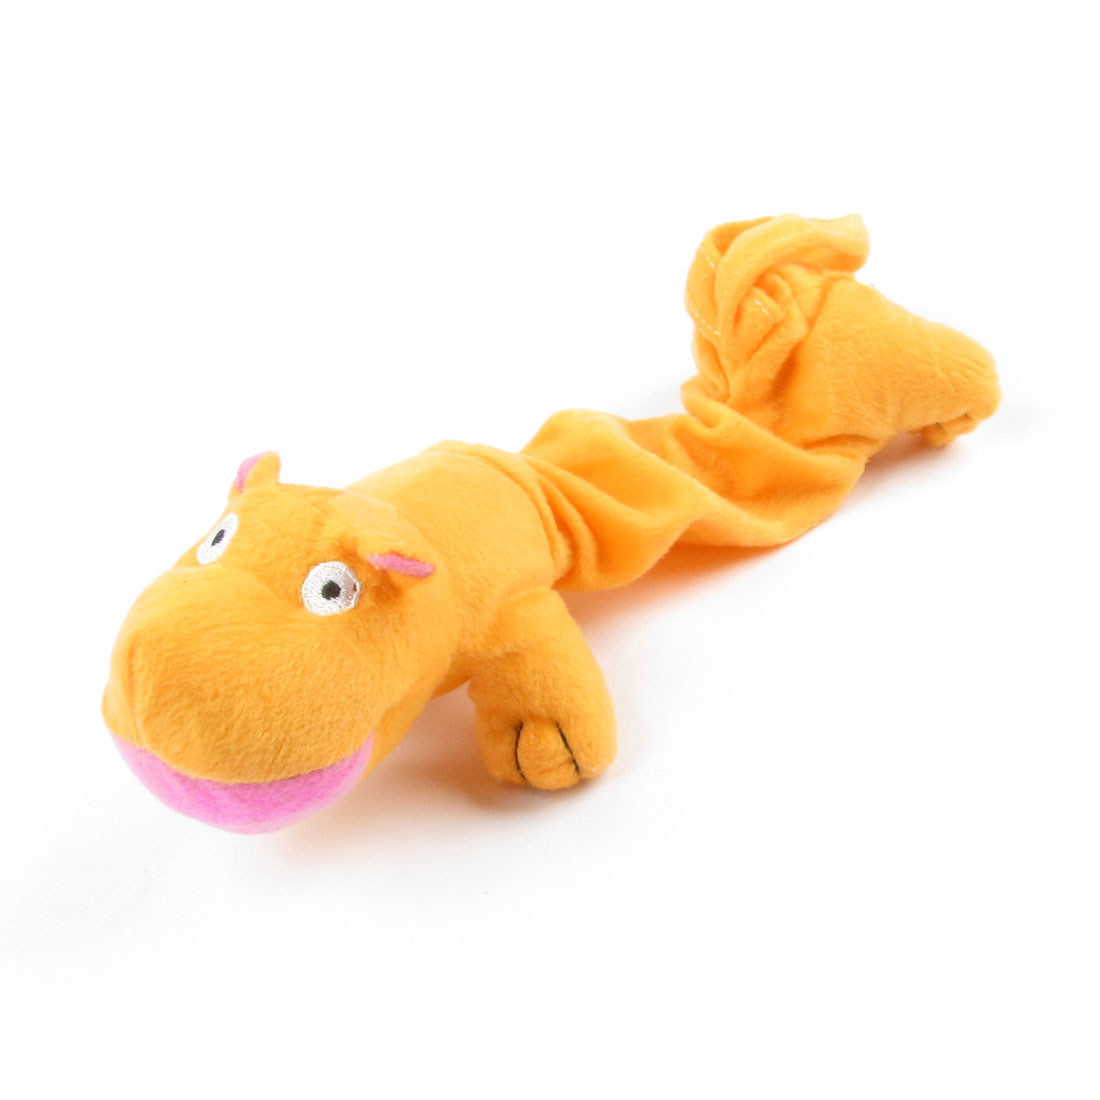 Orange Hippo Shape Black Eyes Plush Toy for Pet Dog Puppy